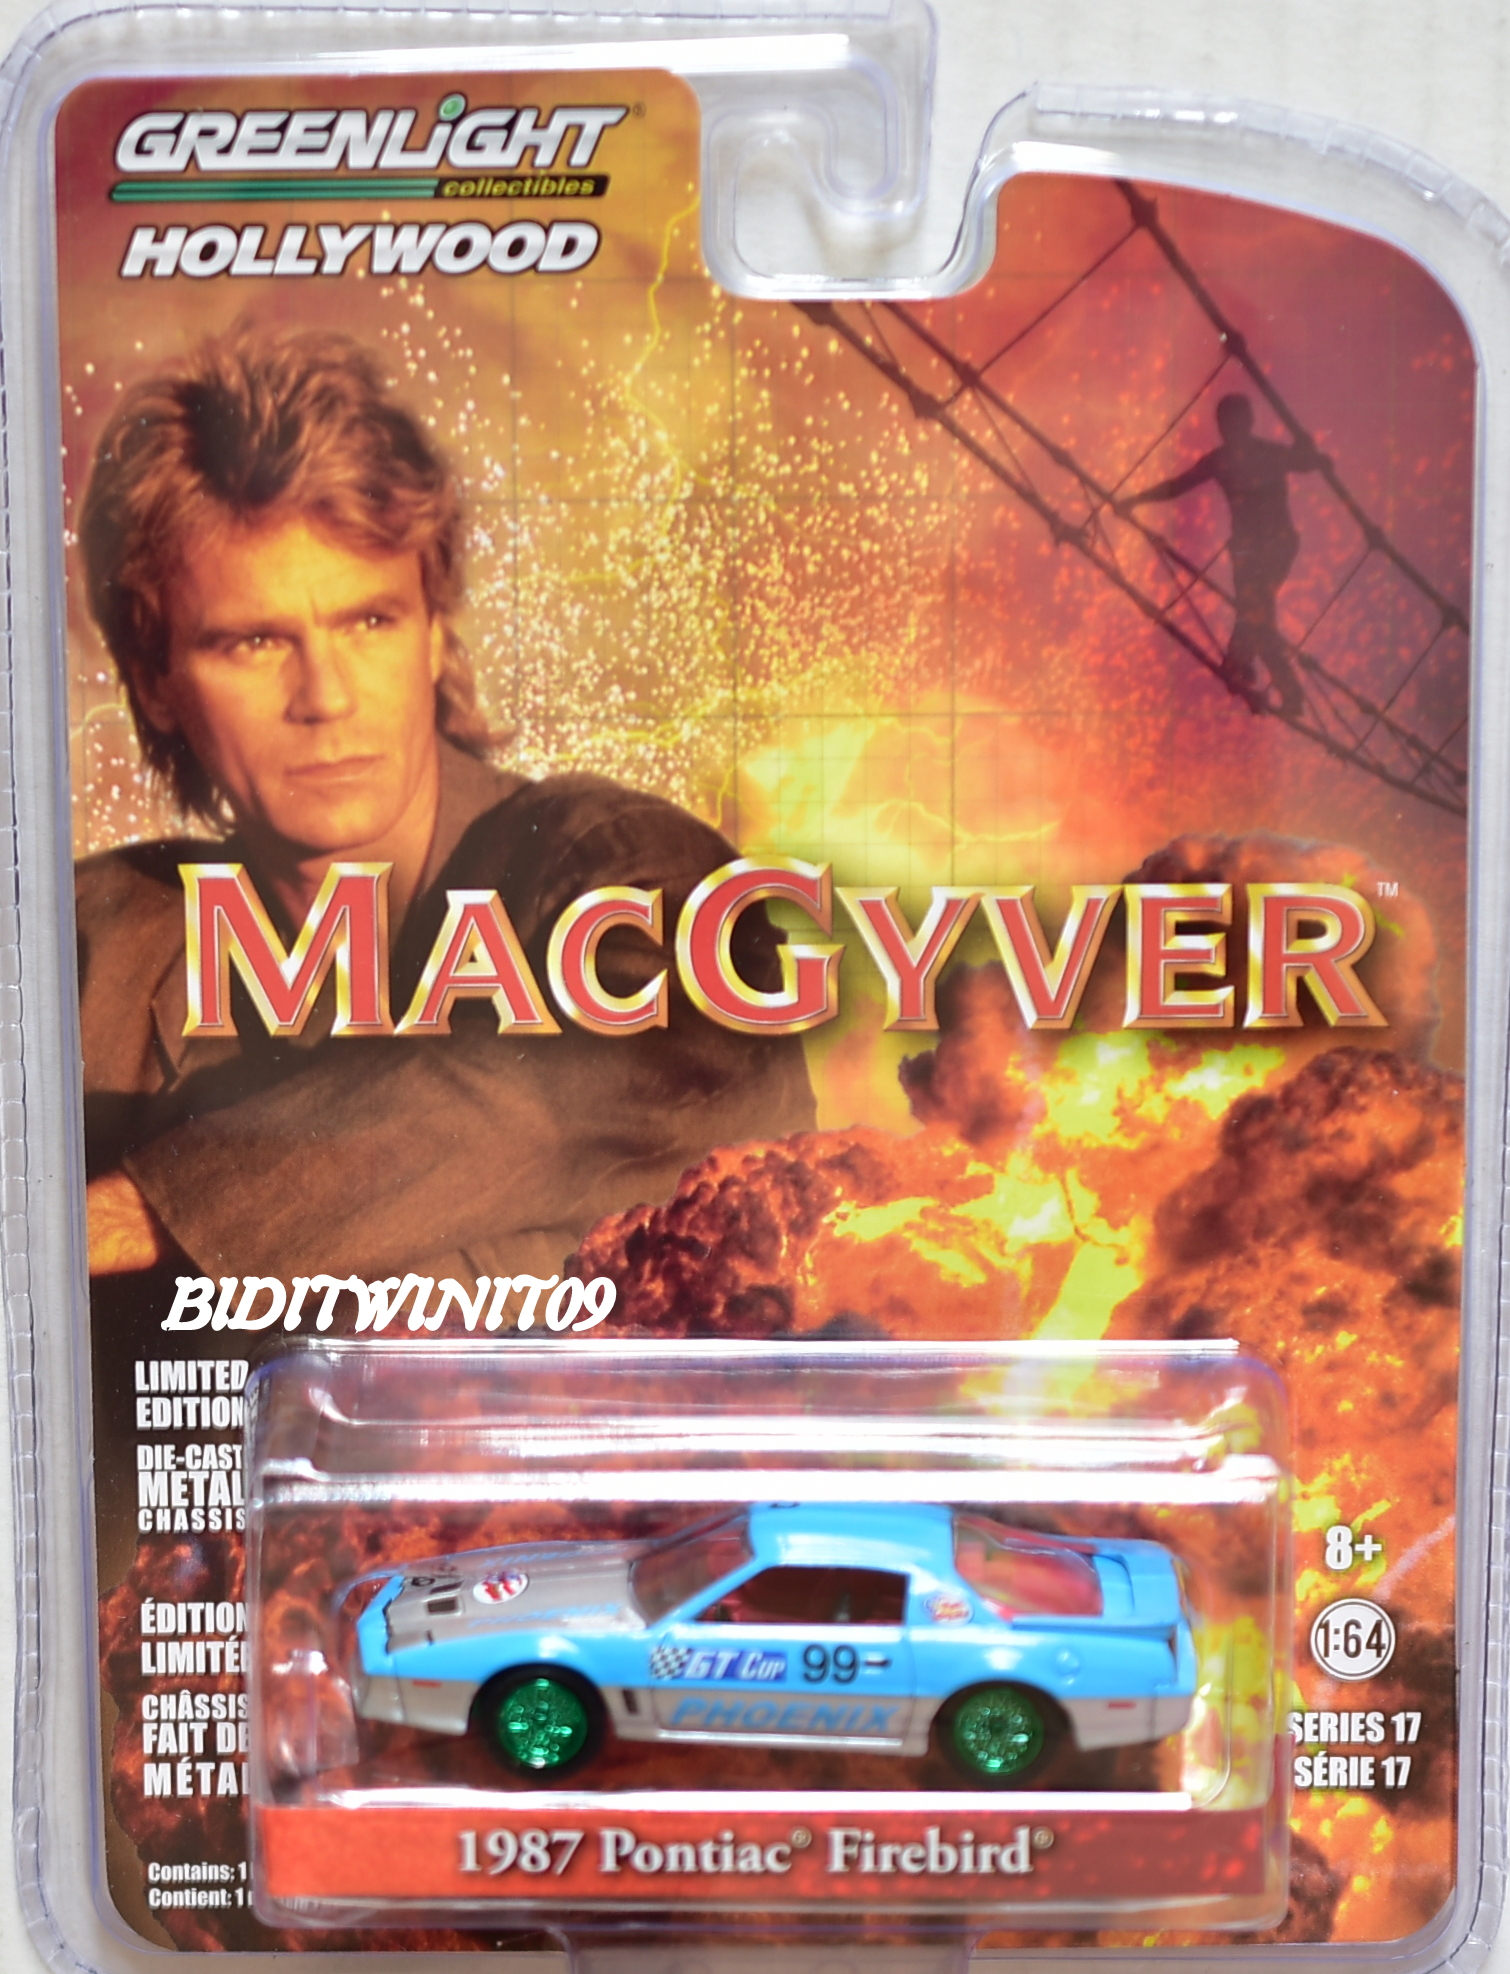 GREENLIGHT 2017 HOLLYWOOD 1987 PONTIAC FIREBIRD MACGYVER GREEN MACHINE